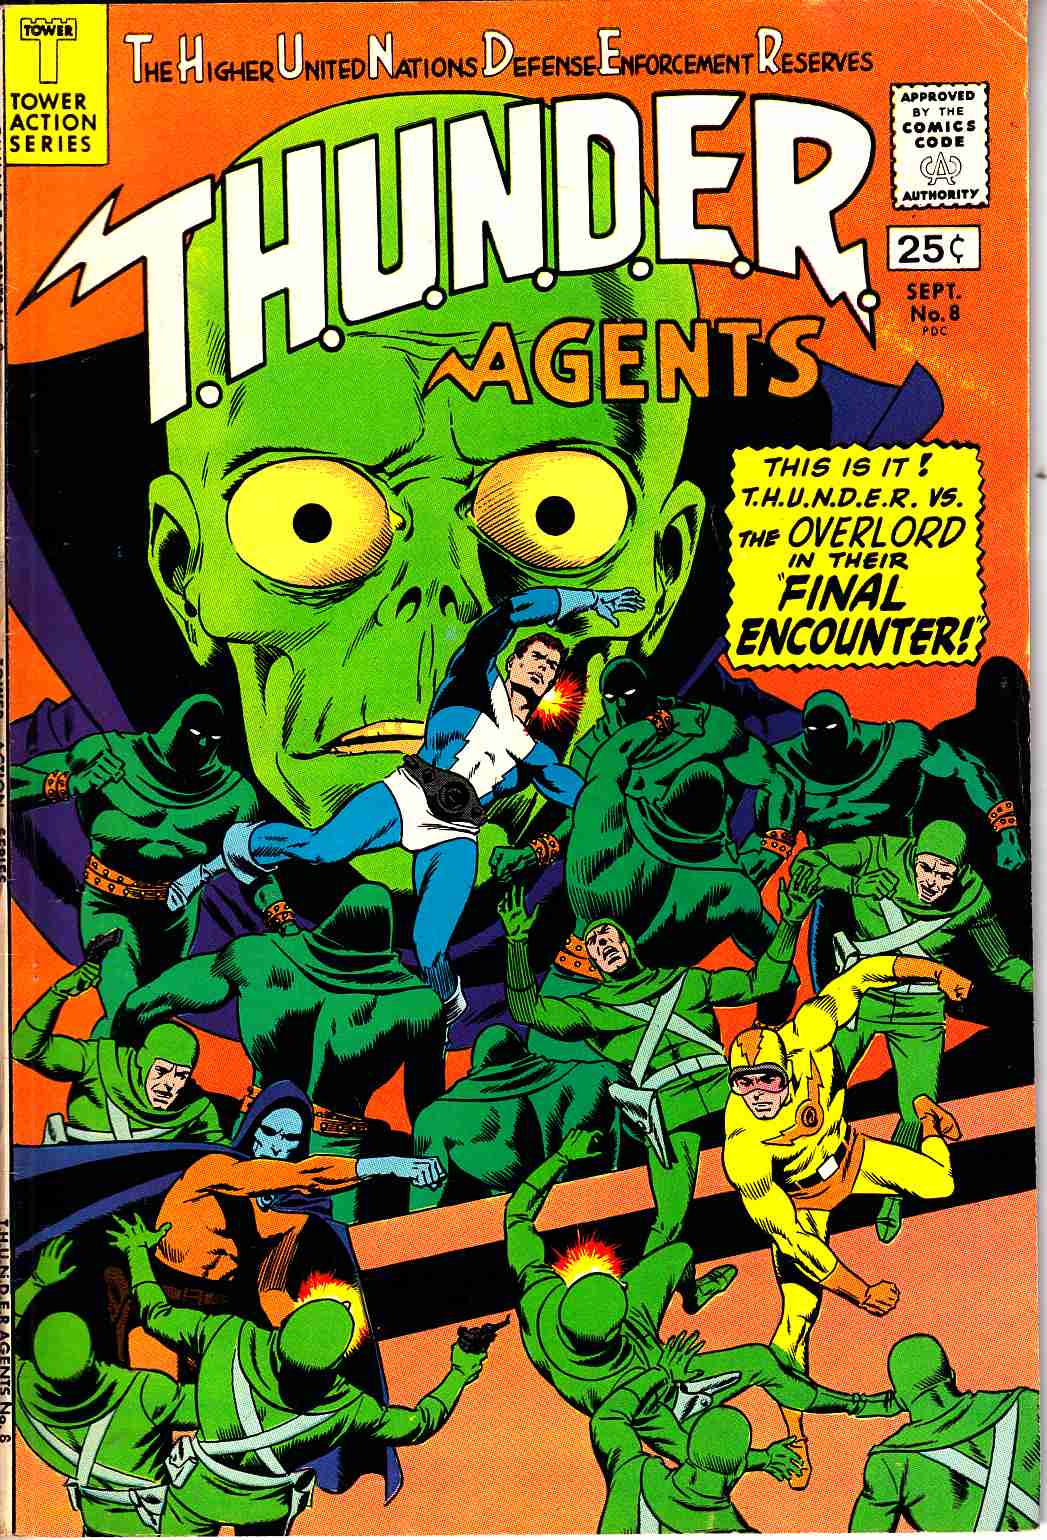 Thunder Agents #8 Fine (6.0) [Tower Comic] LARGE